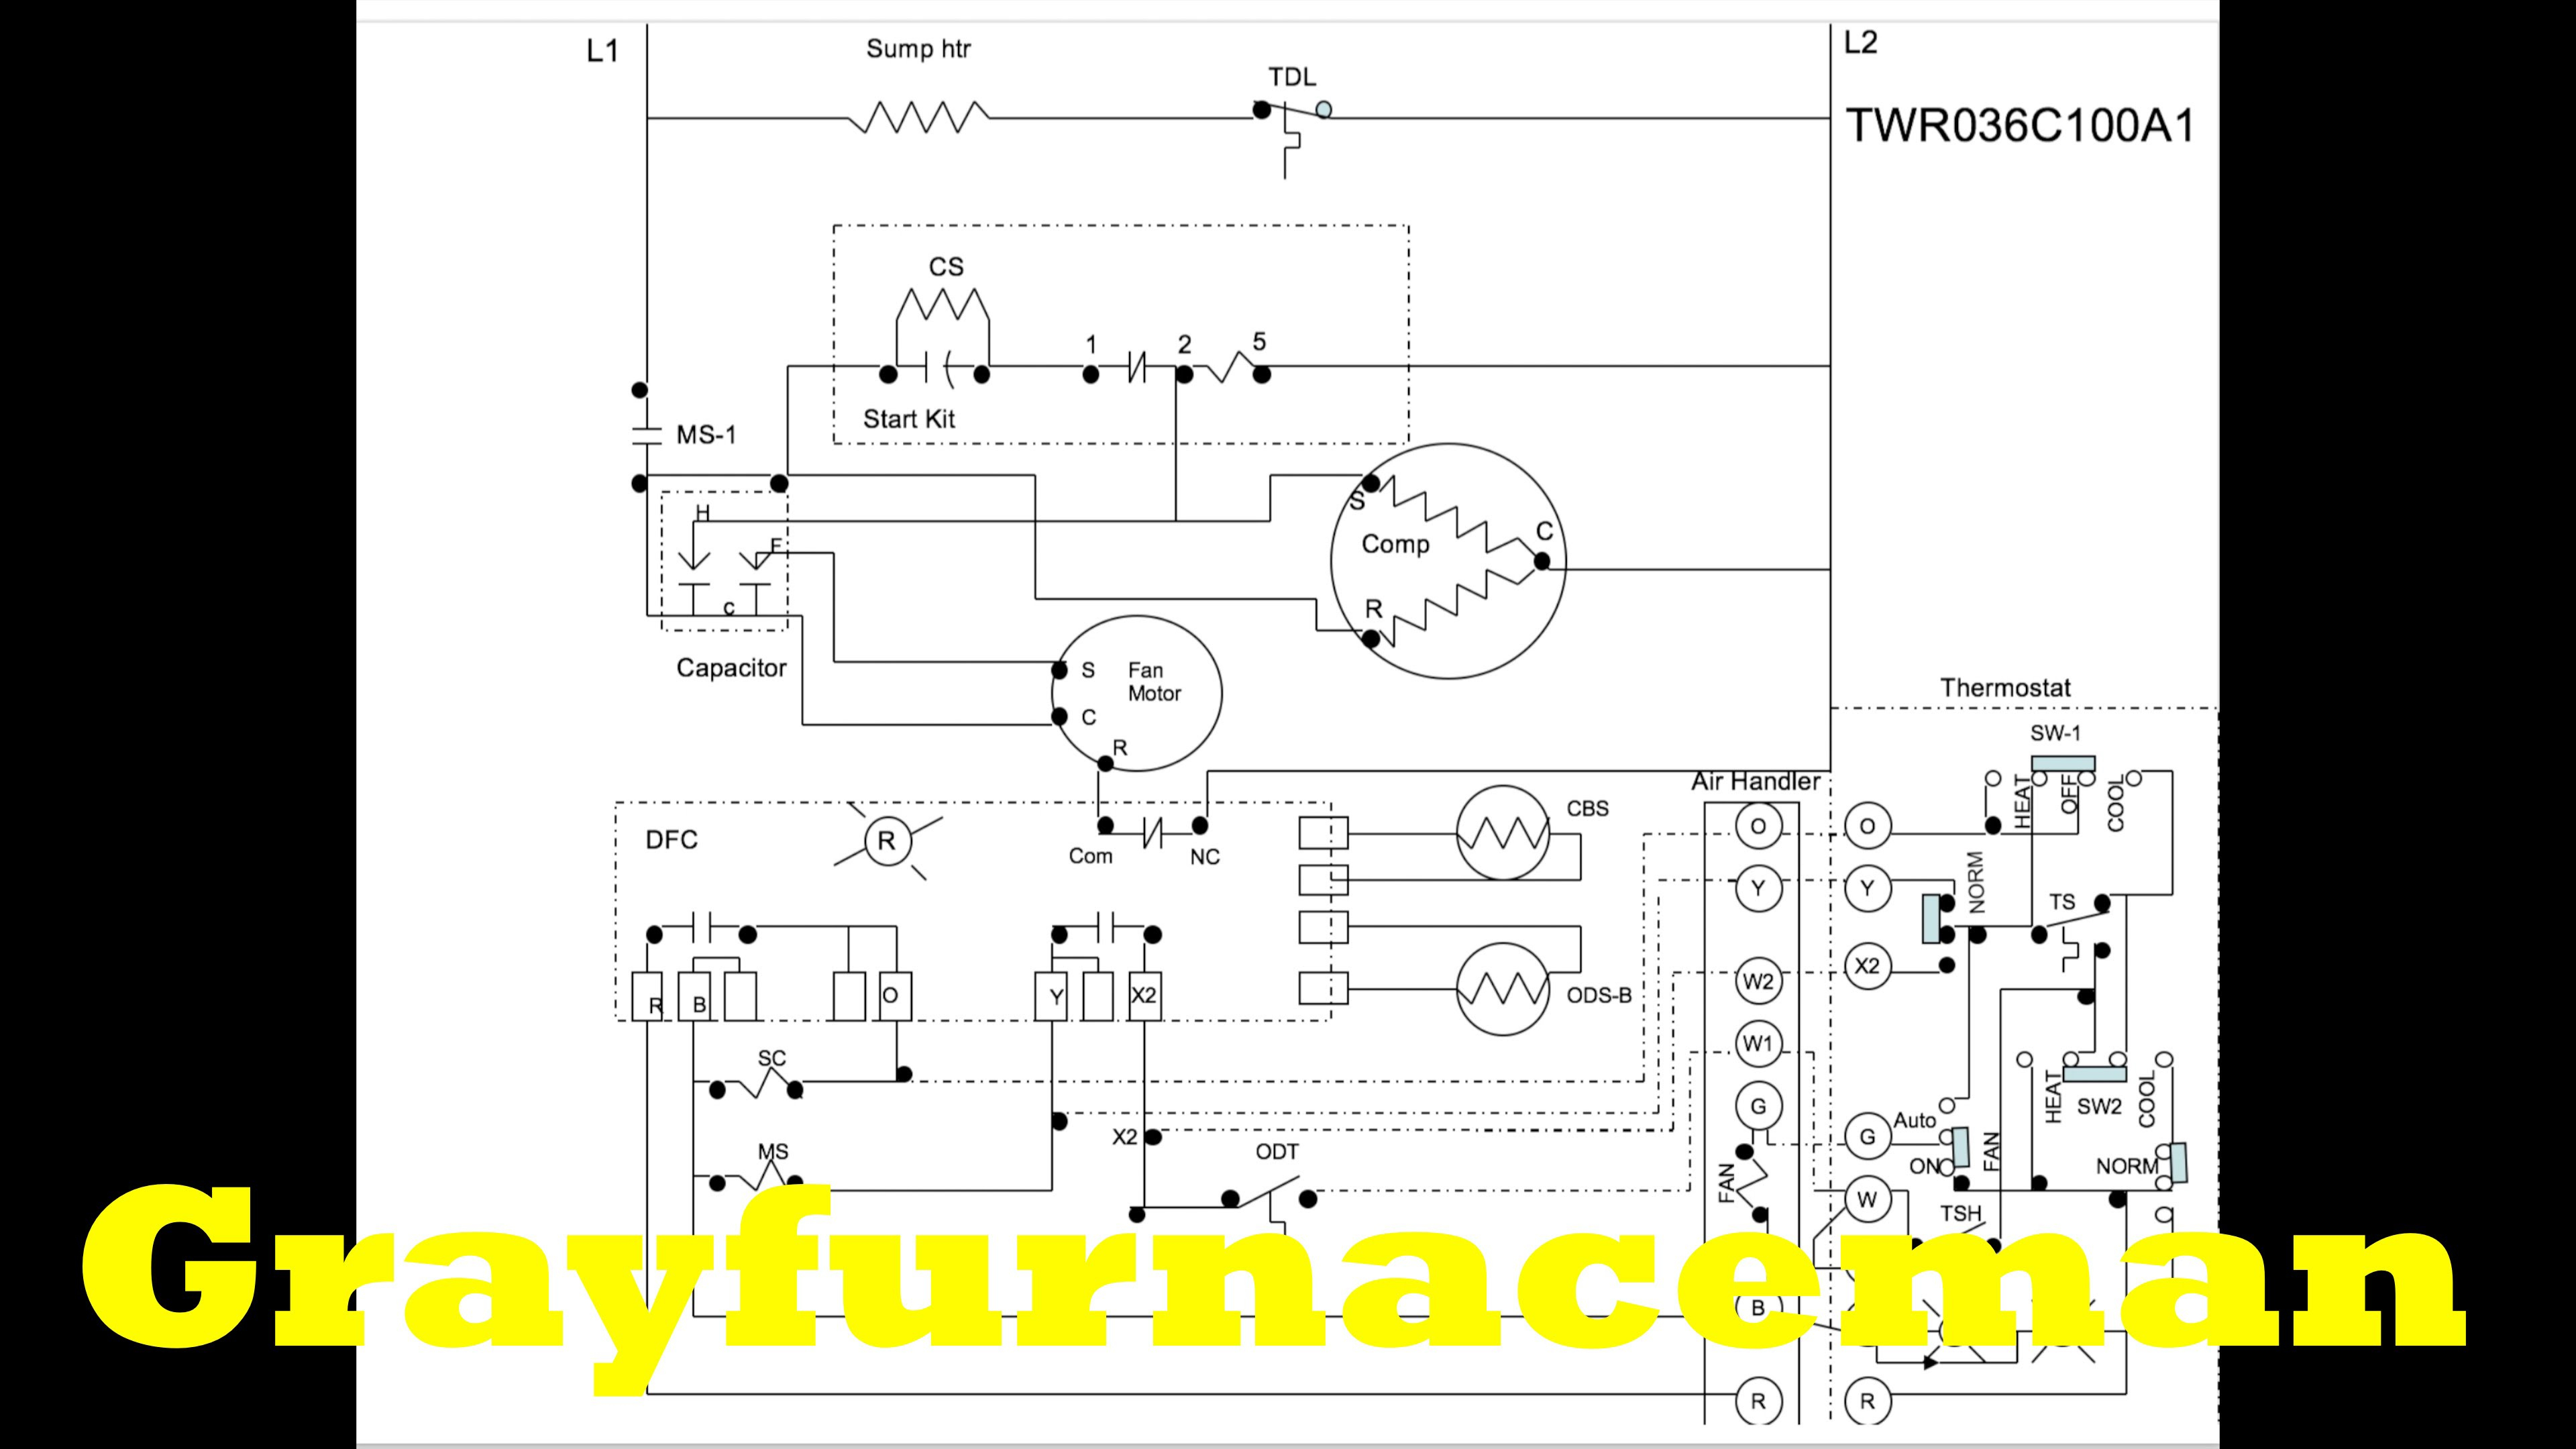 Goodman Heat Pump Thermostat Wiring Diagram | Schematic Diagram - Nest Thermostat Wiring Diagram Heat Pump